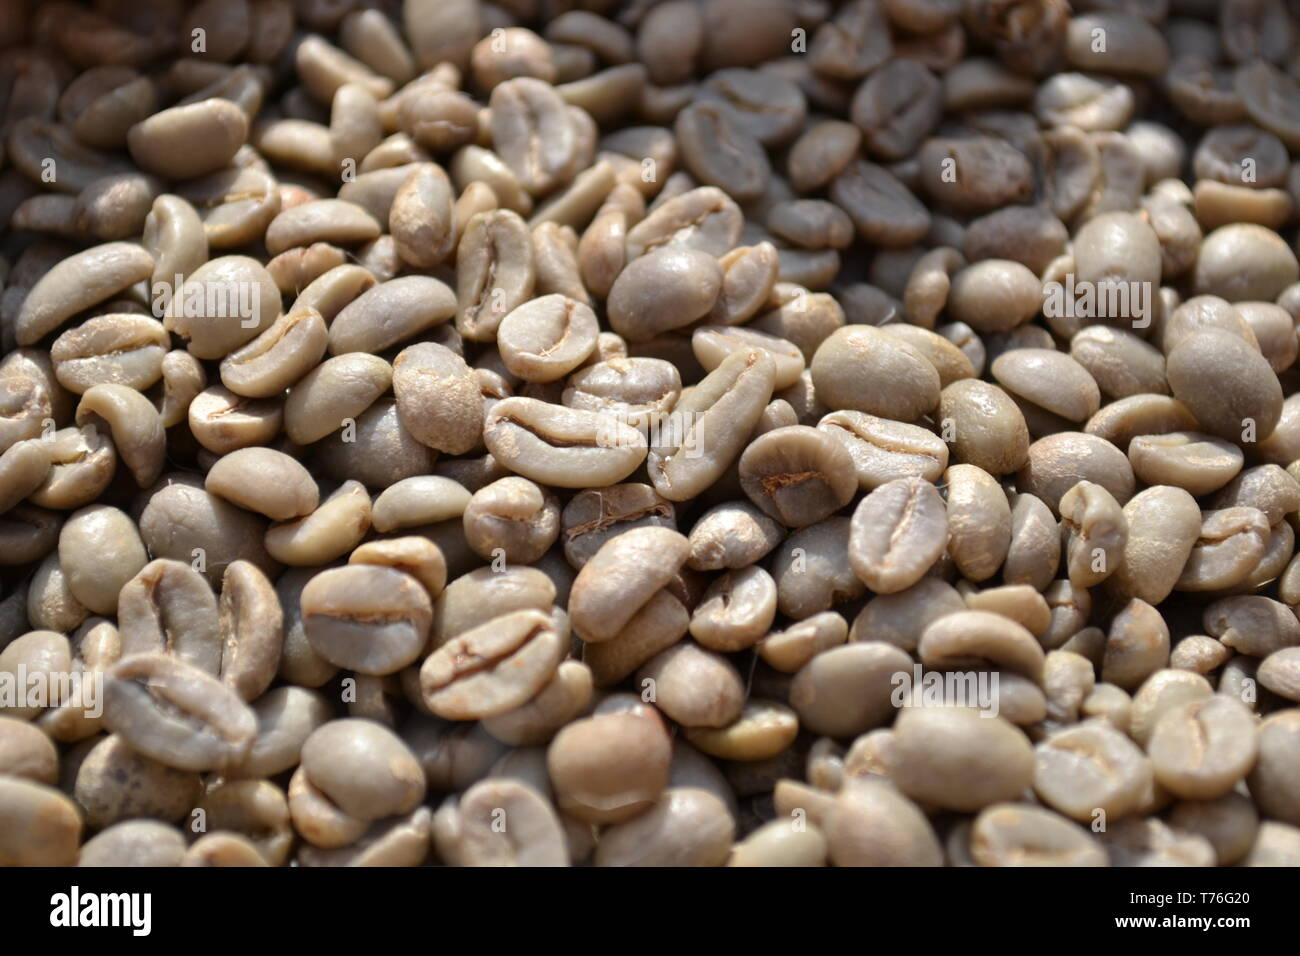 Unroasted Coffee Beans >> Unroasted Dry Green Coffee Beans Exposed In Daylight As Food